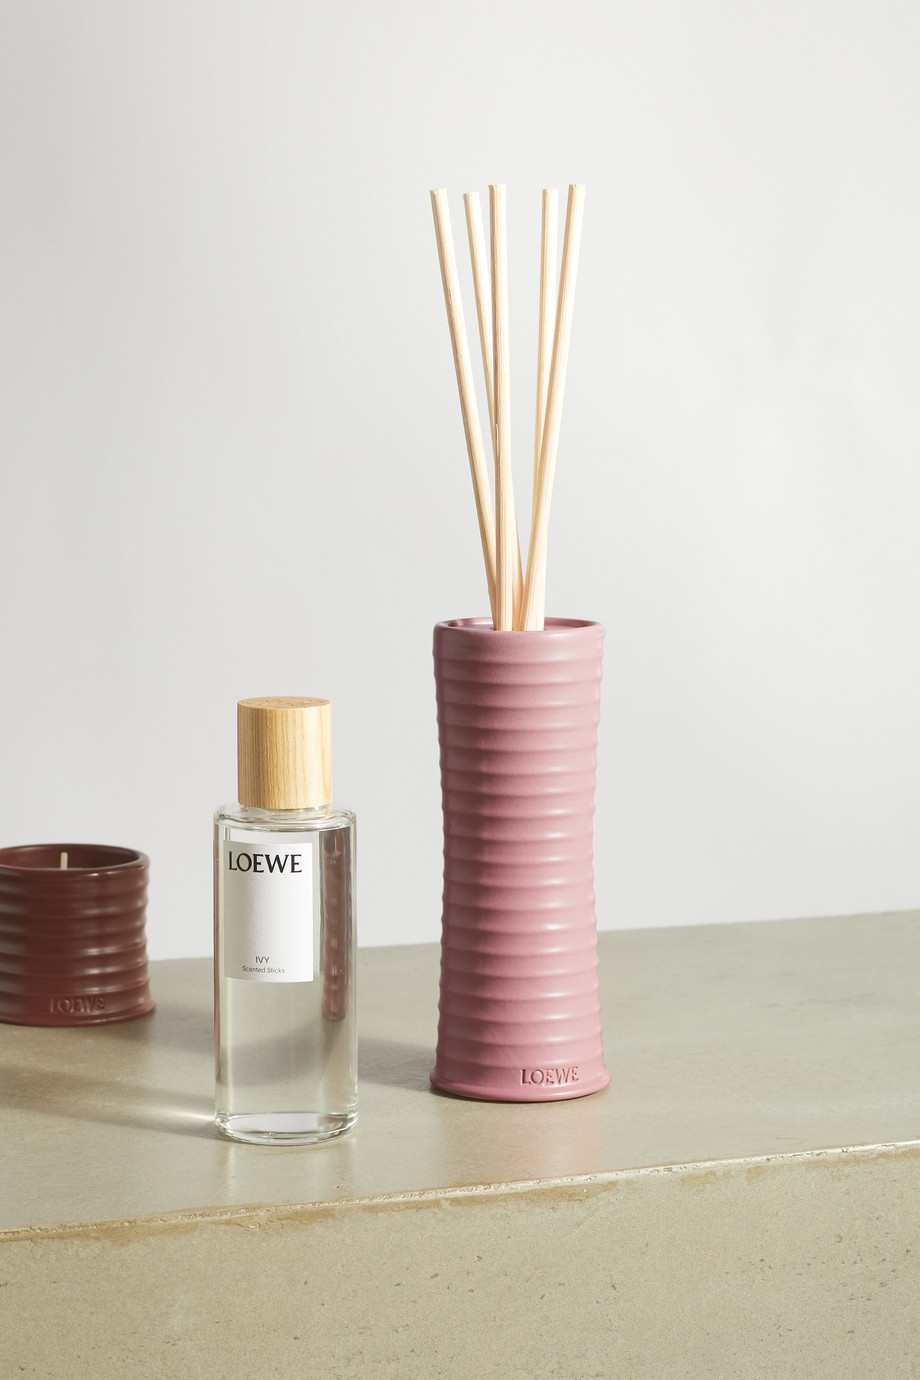 LOEWE Home Scents Scented Sticks - Ivy, 245ml